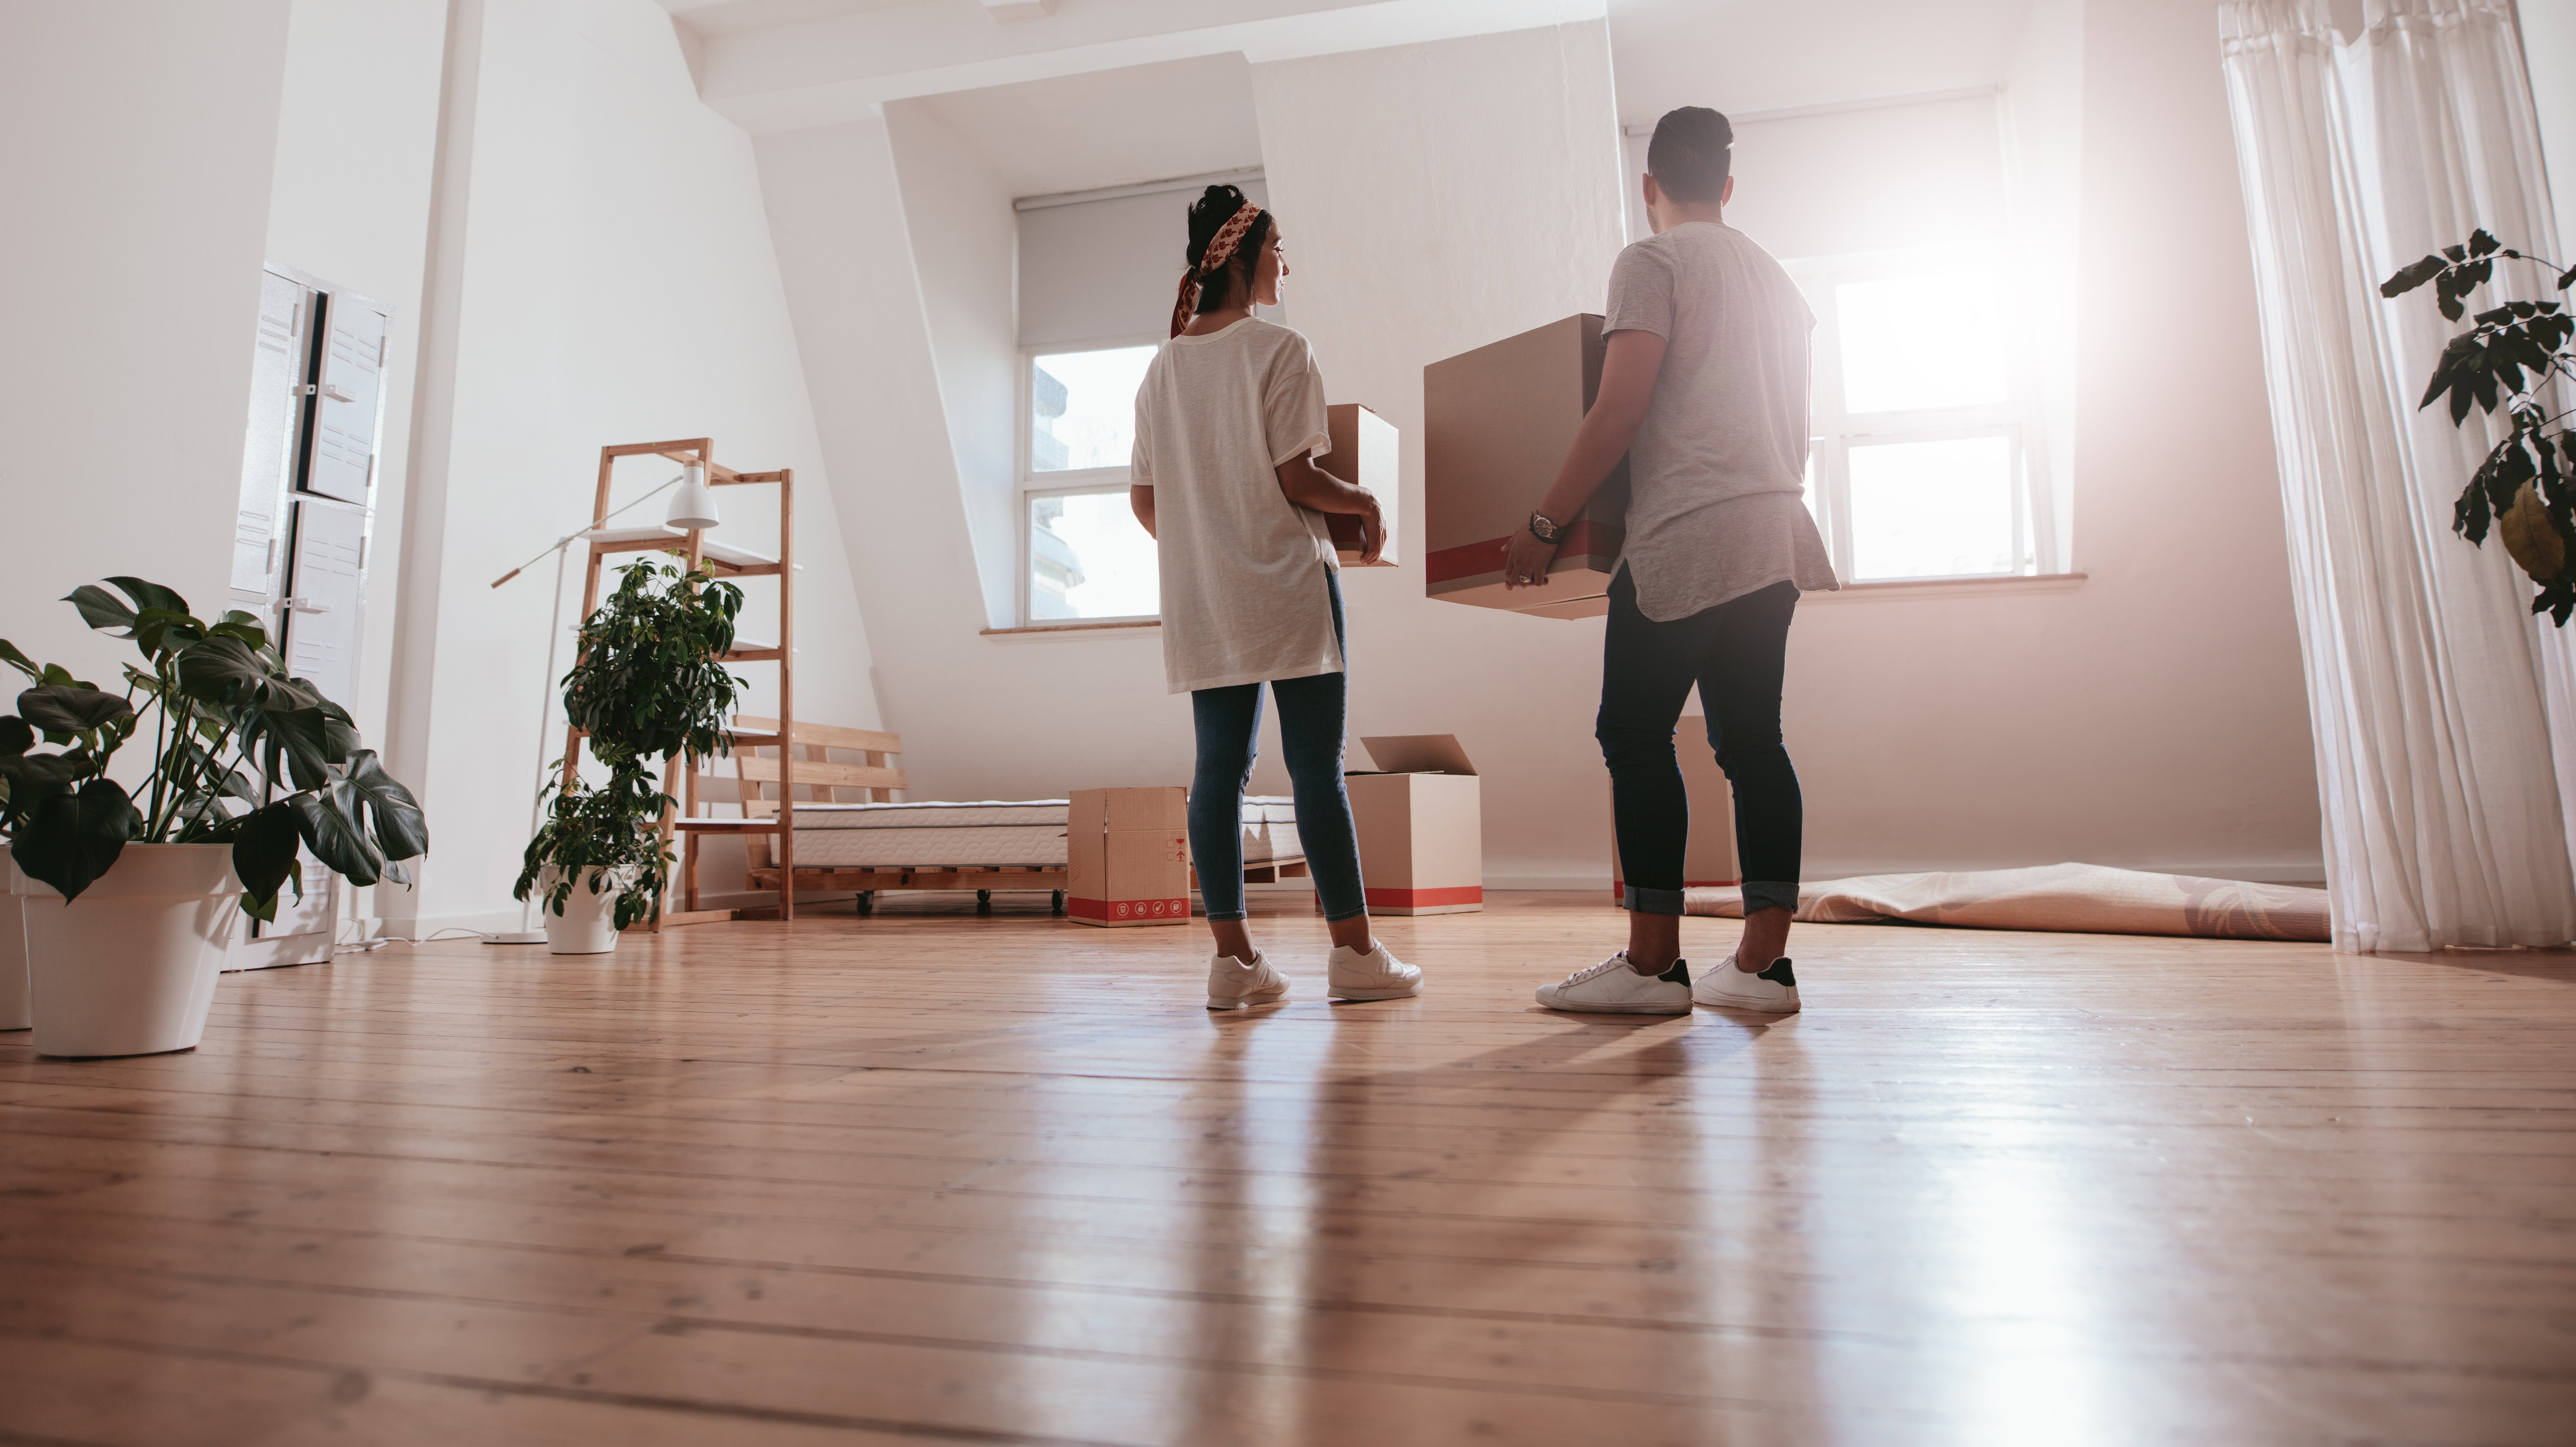 To downsize or not to downsize: Pros and cons